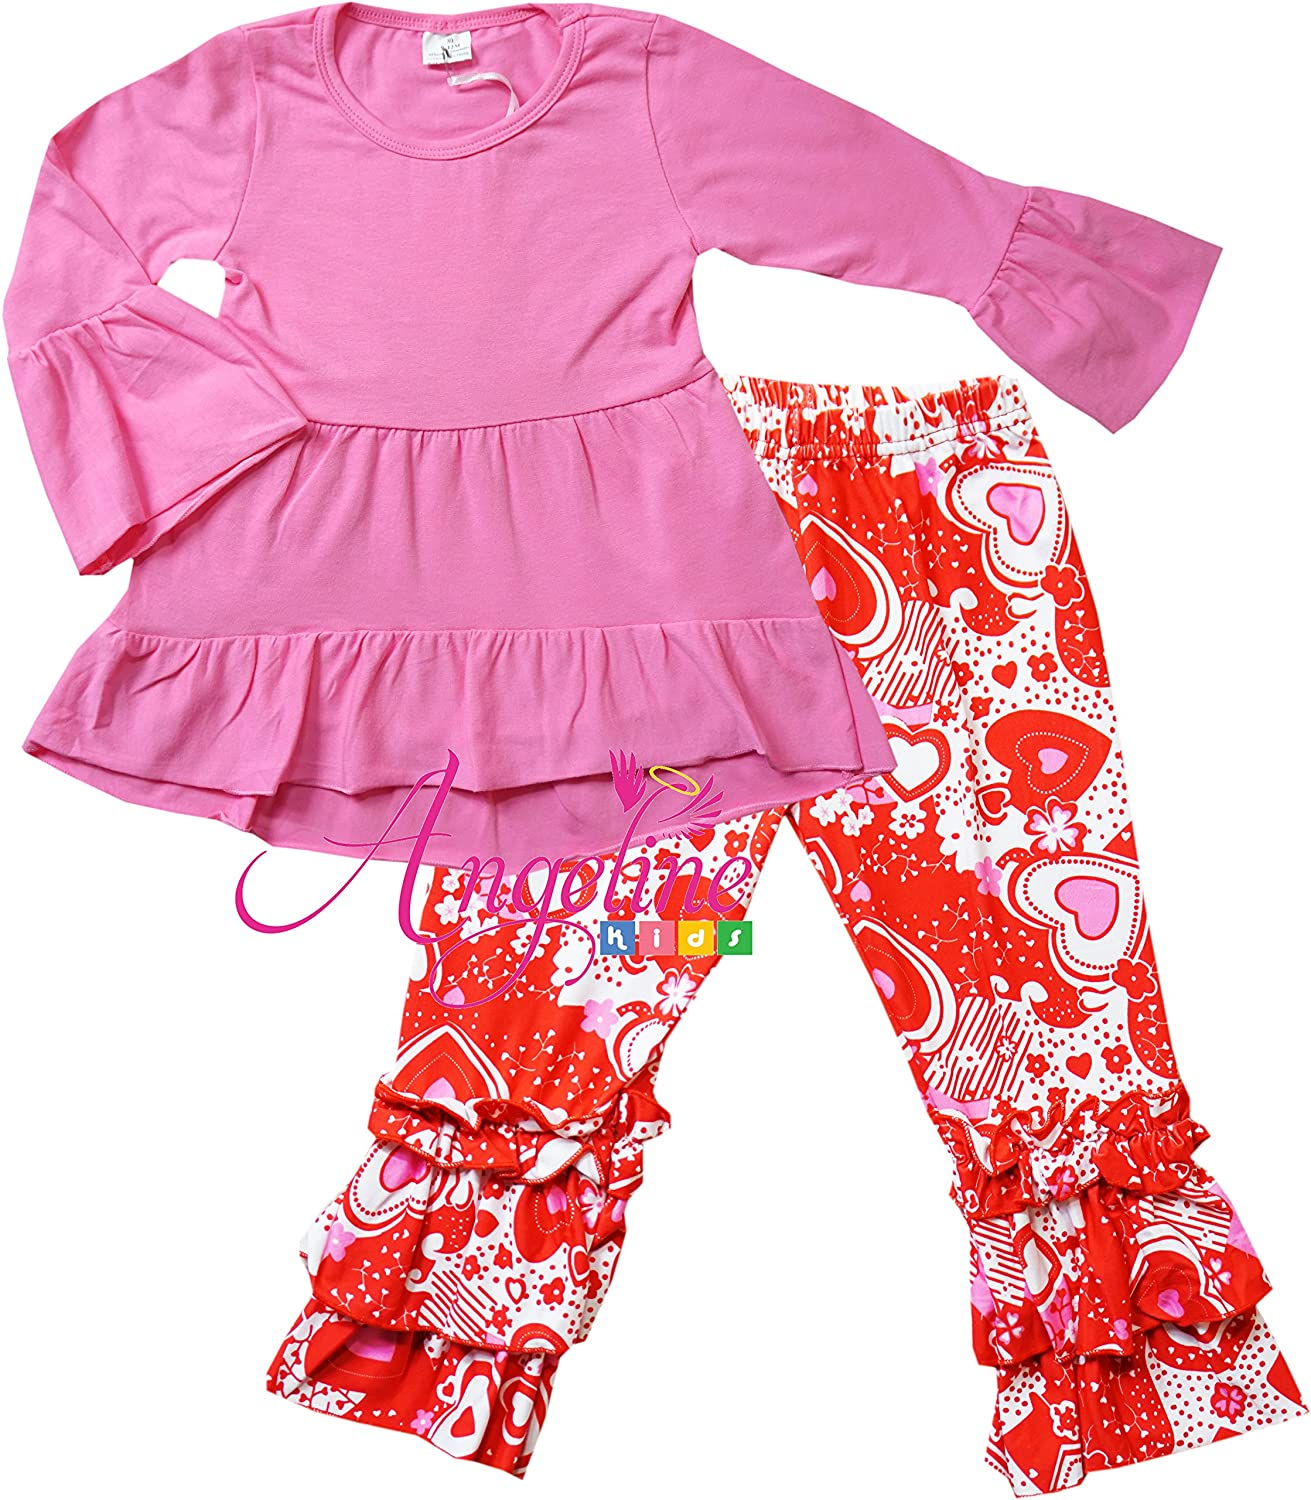 24 Months Or 2t Boutique Style Baby Girl Outfit Size Medium Girls' Clothing (newborn-5t)